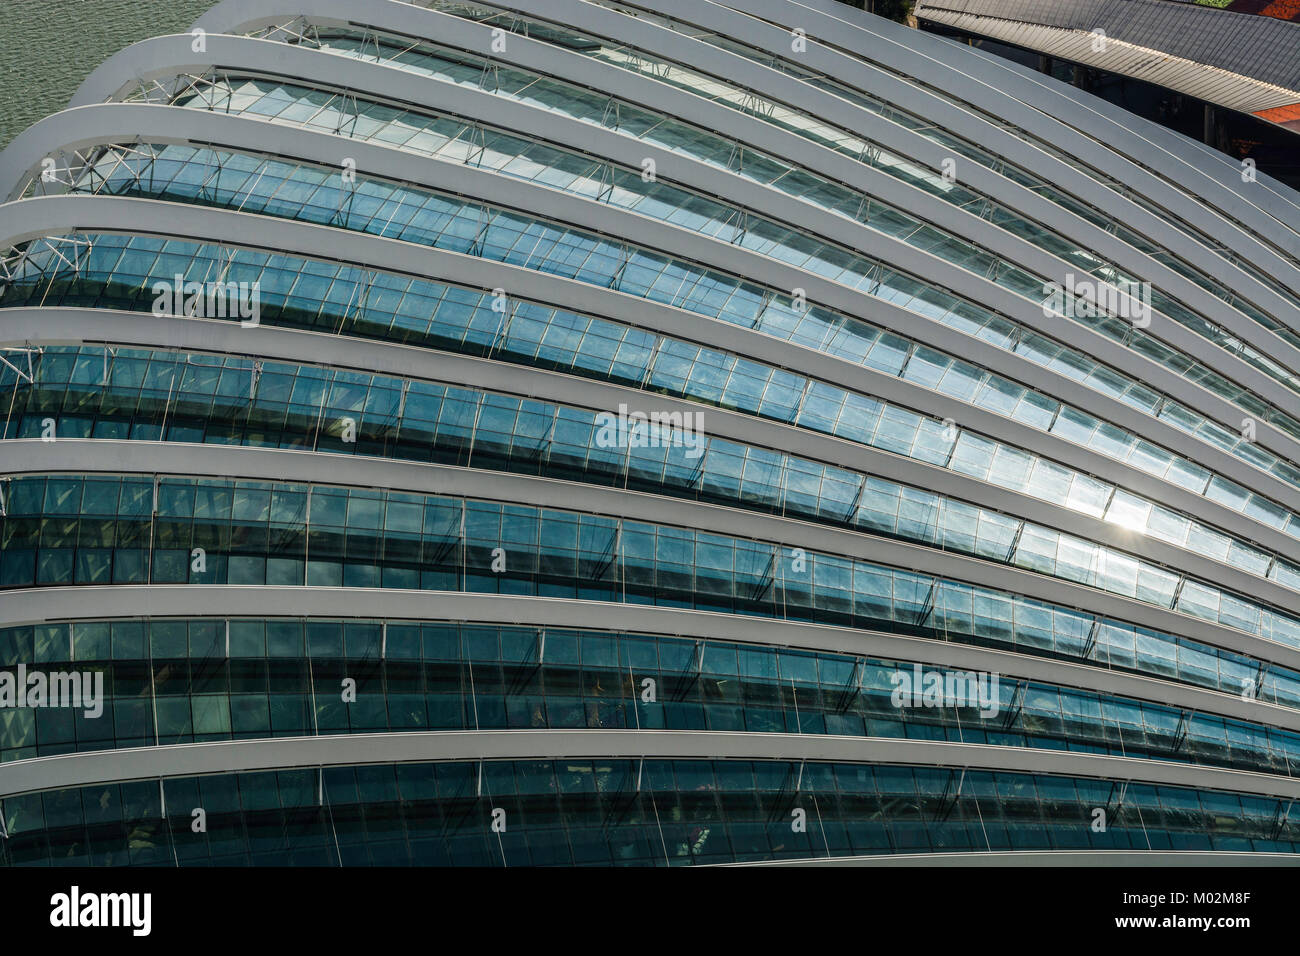 architecture of Downton Core, Marina Bay, Singapore - Stock Image